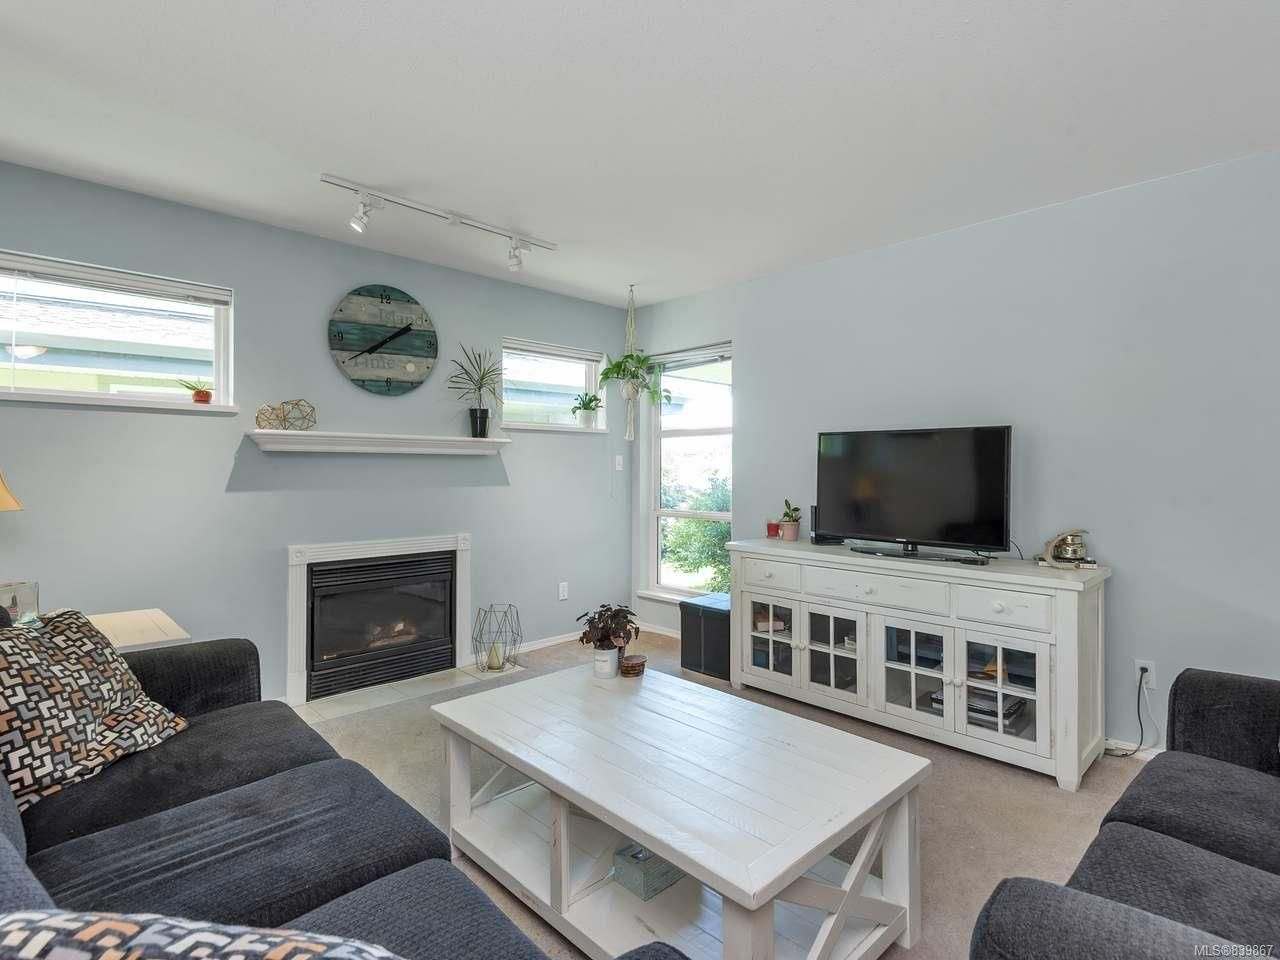 Photo 10: Photos: 21 2750 Denman St in CAMPBELL RIVER: CR Willow Point Row/Townhouse for sale (Campbell River)  : MLS®# 839867